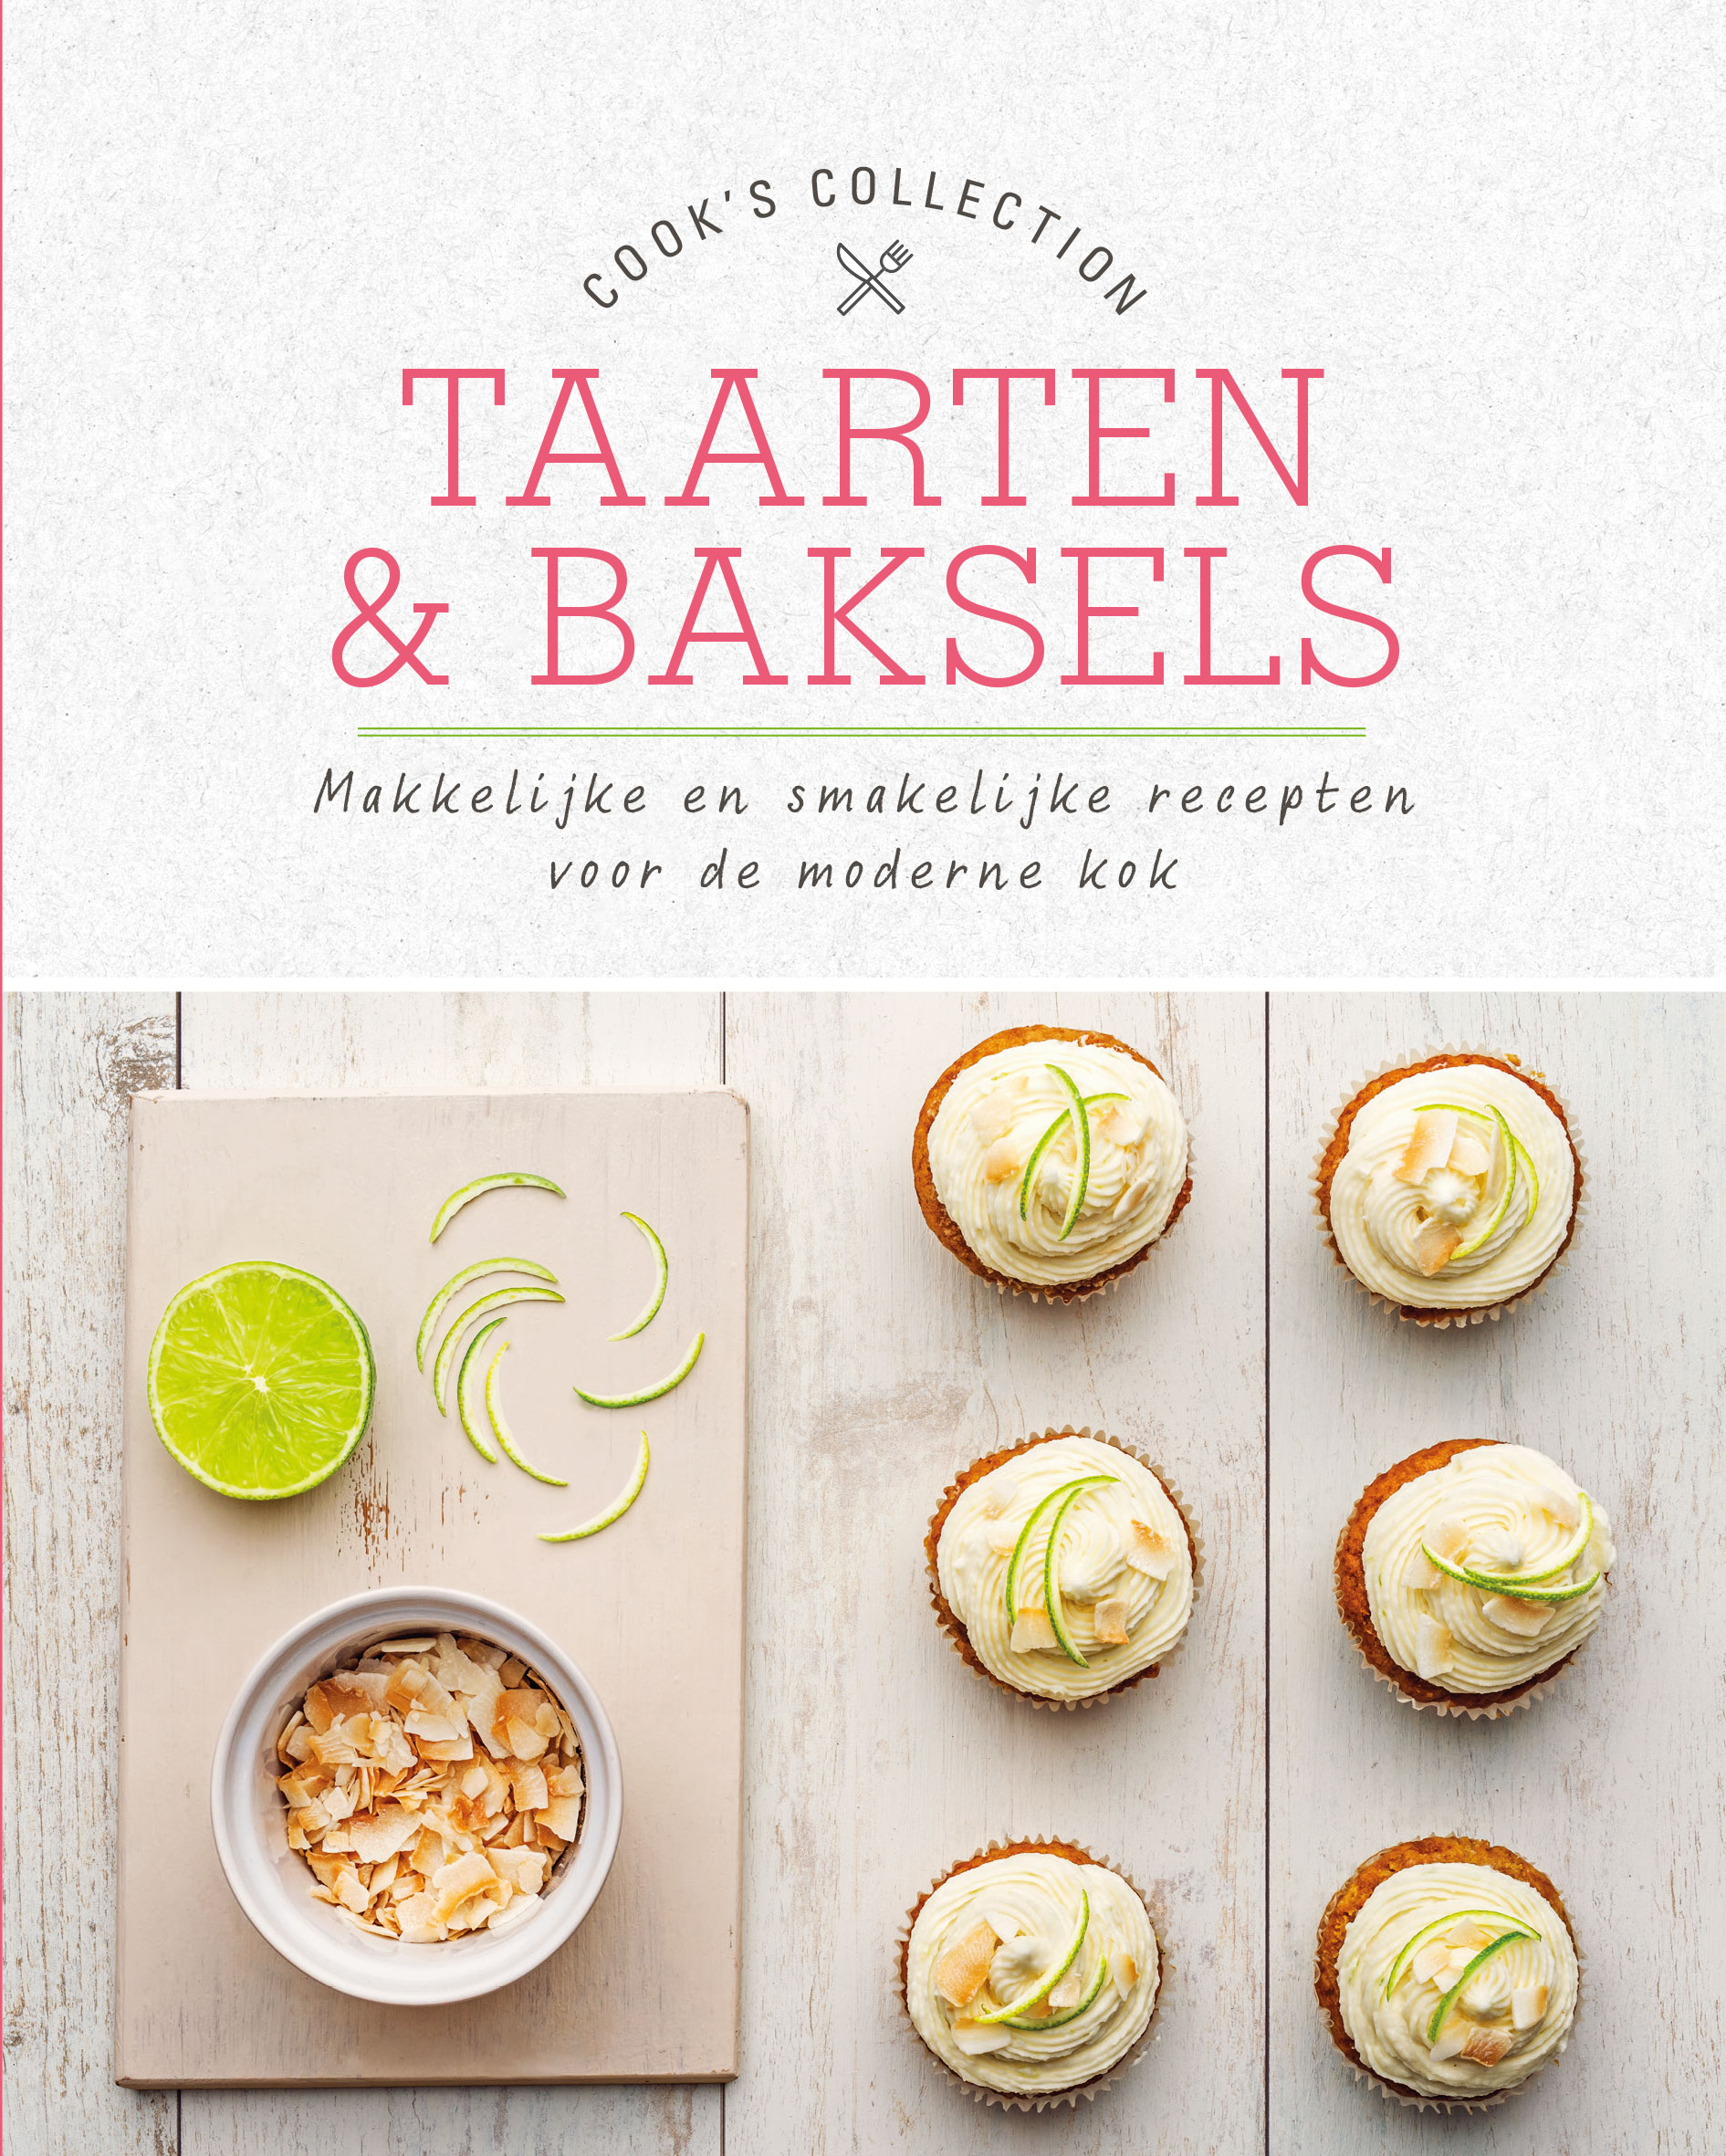 Cook's collection Taarten & baksels